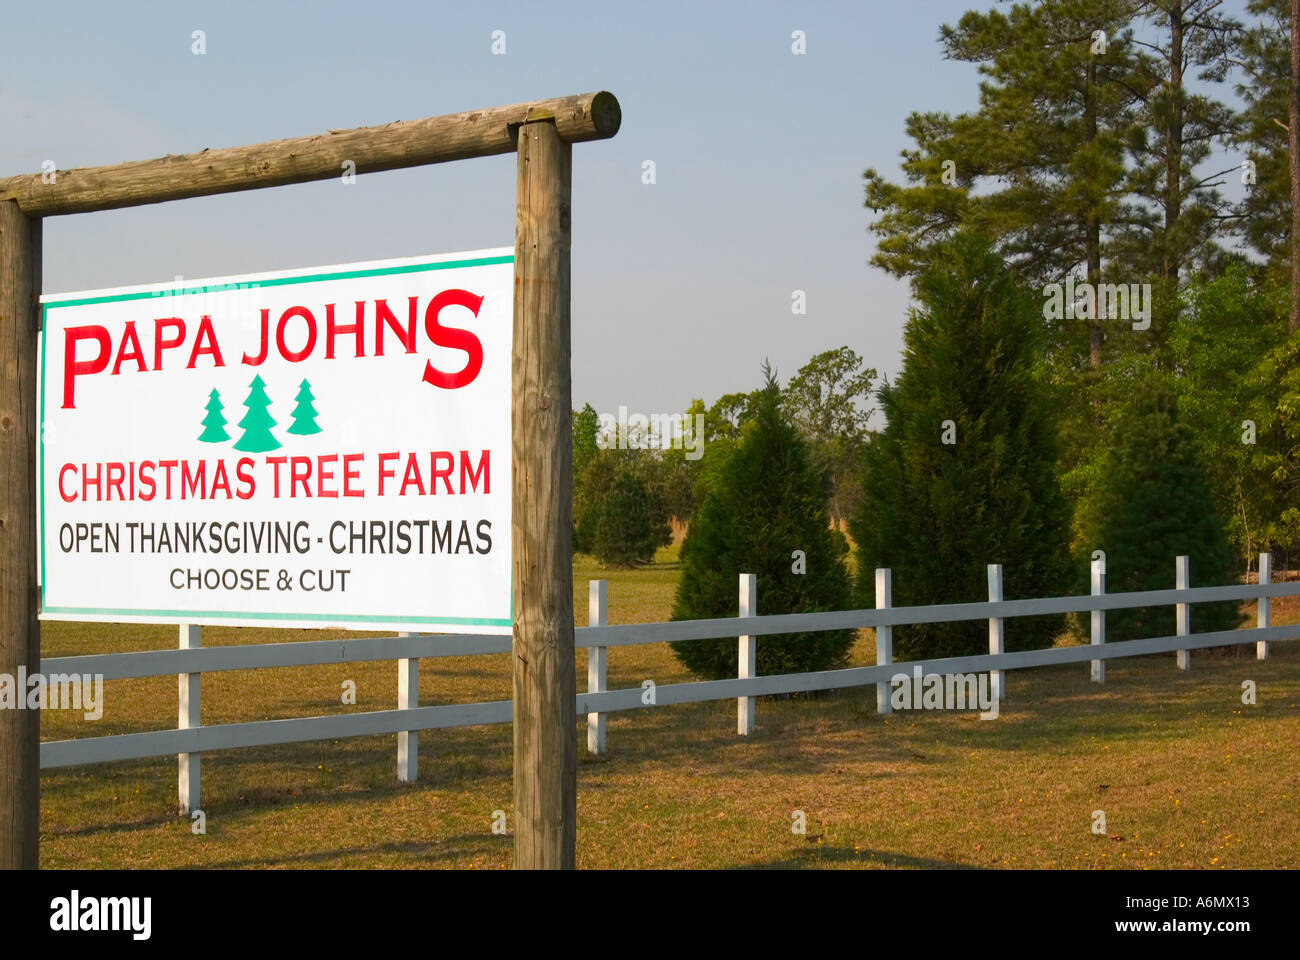 Papa Johns Christmas tree farm South Carolina USA Stock Photo ...